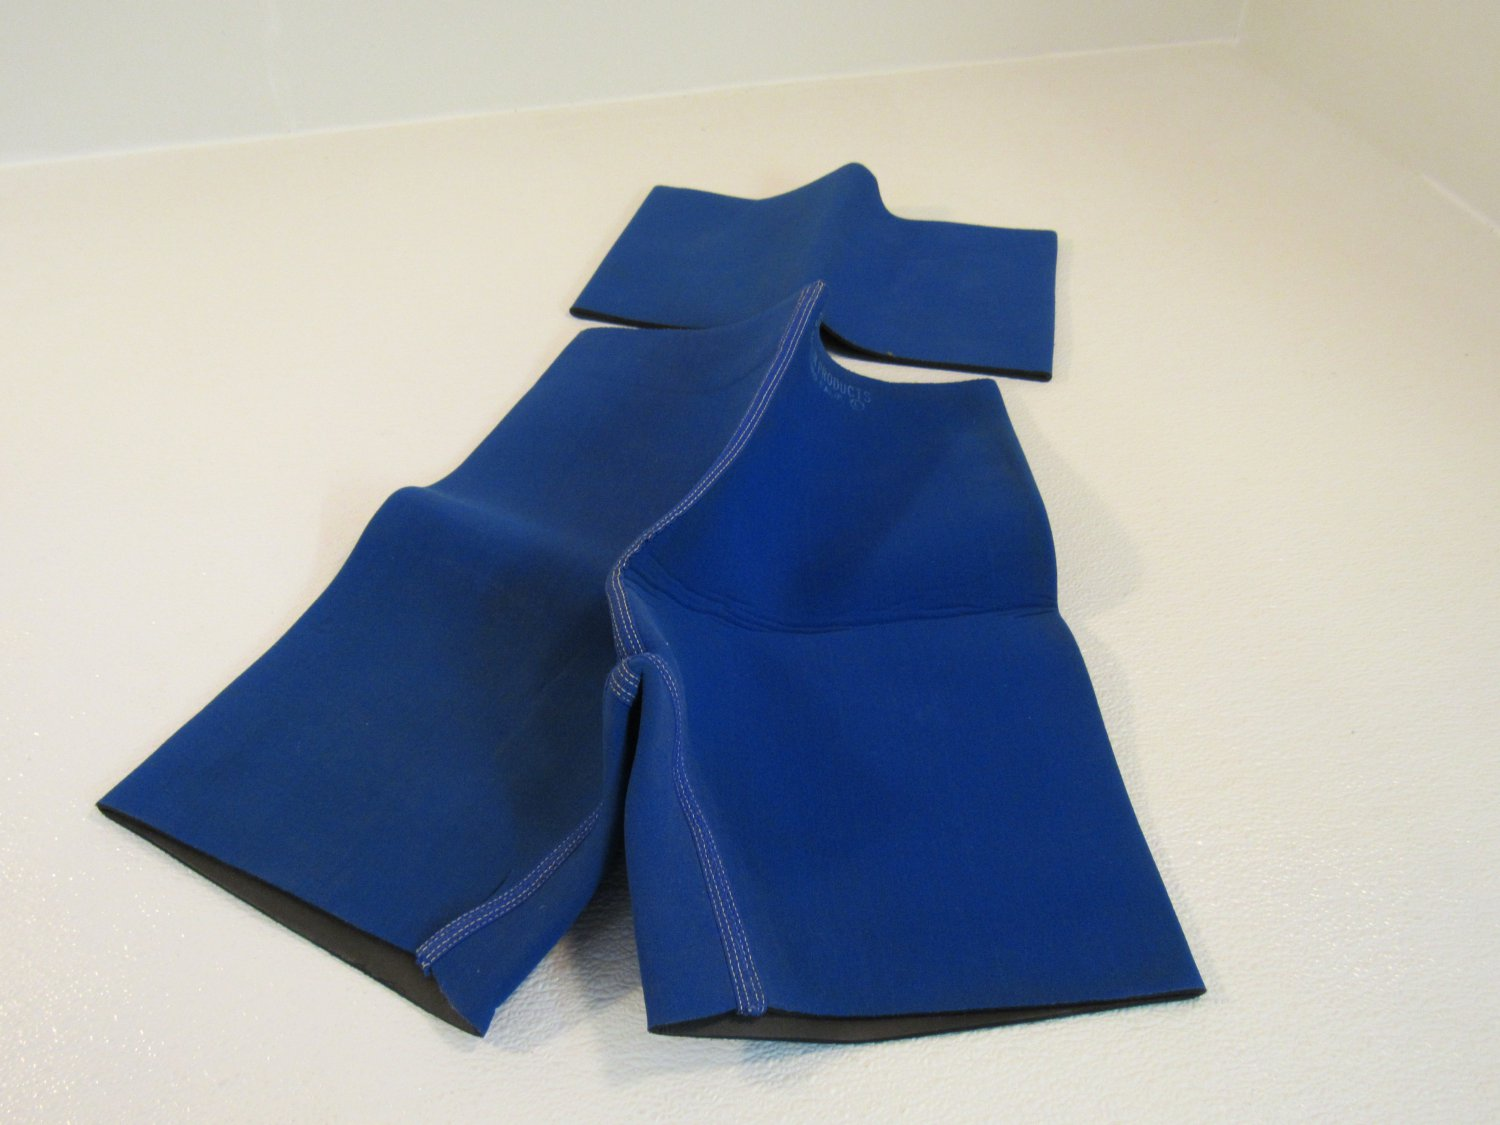 STA SLIM Products Compression Shorts And Waist Band Blue/Black Trimmer Neoprene